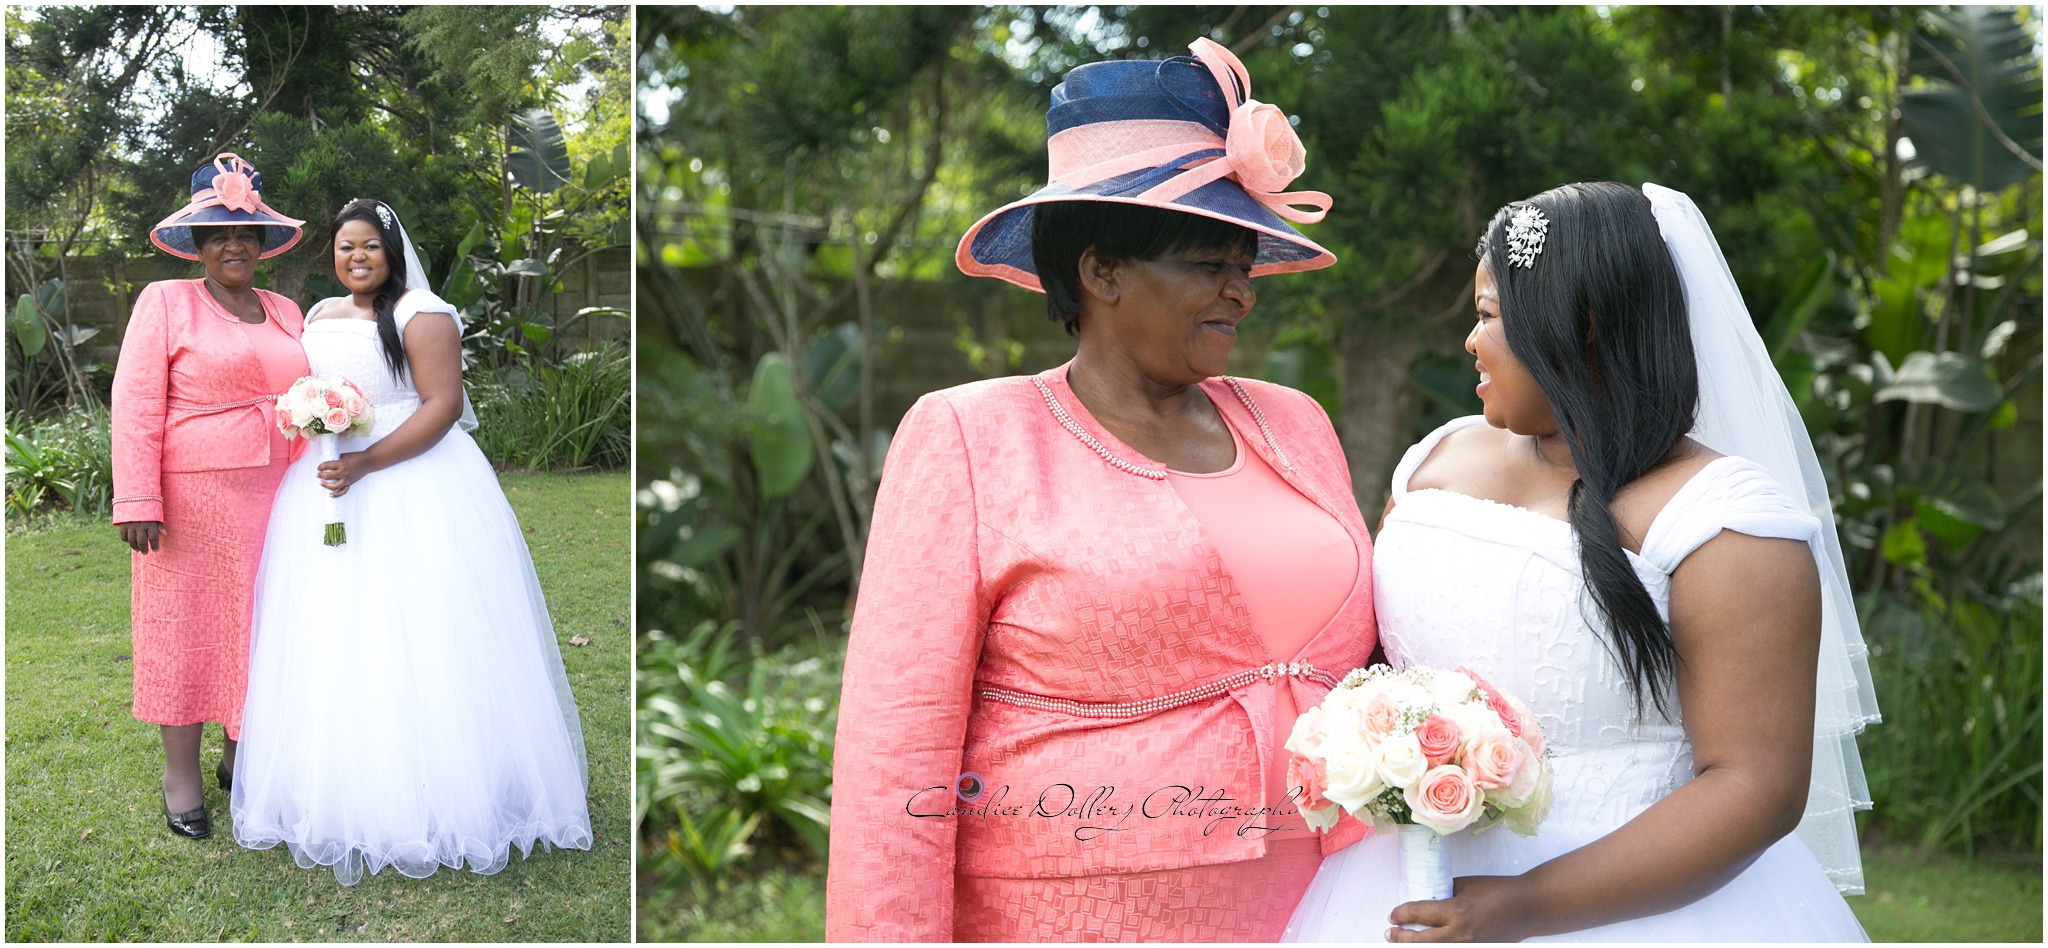 Wedding Gonubie Manor Thola & Phili-Candice Dollery Photograhy_4229